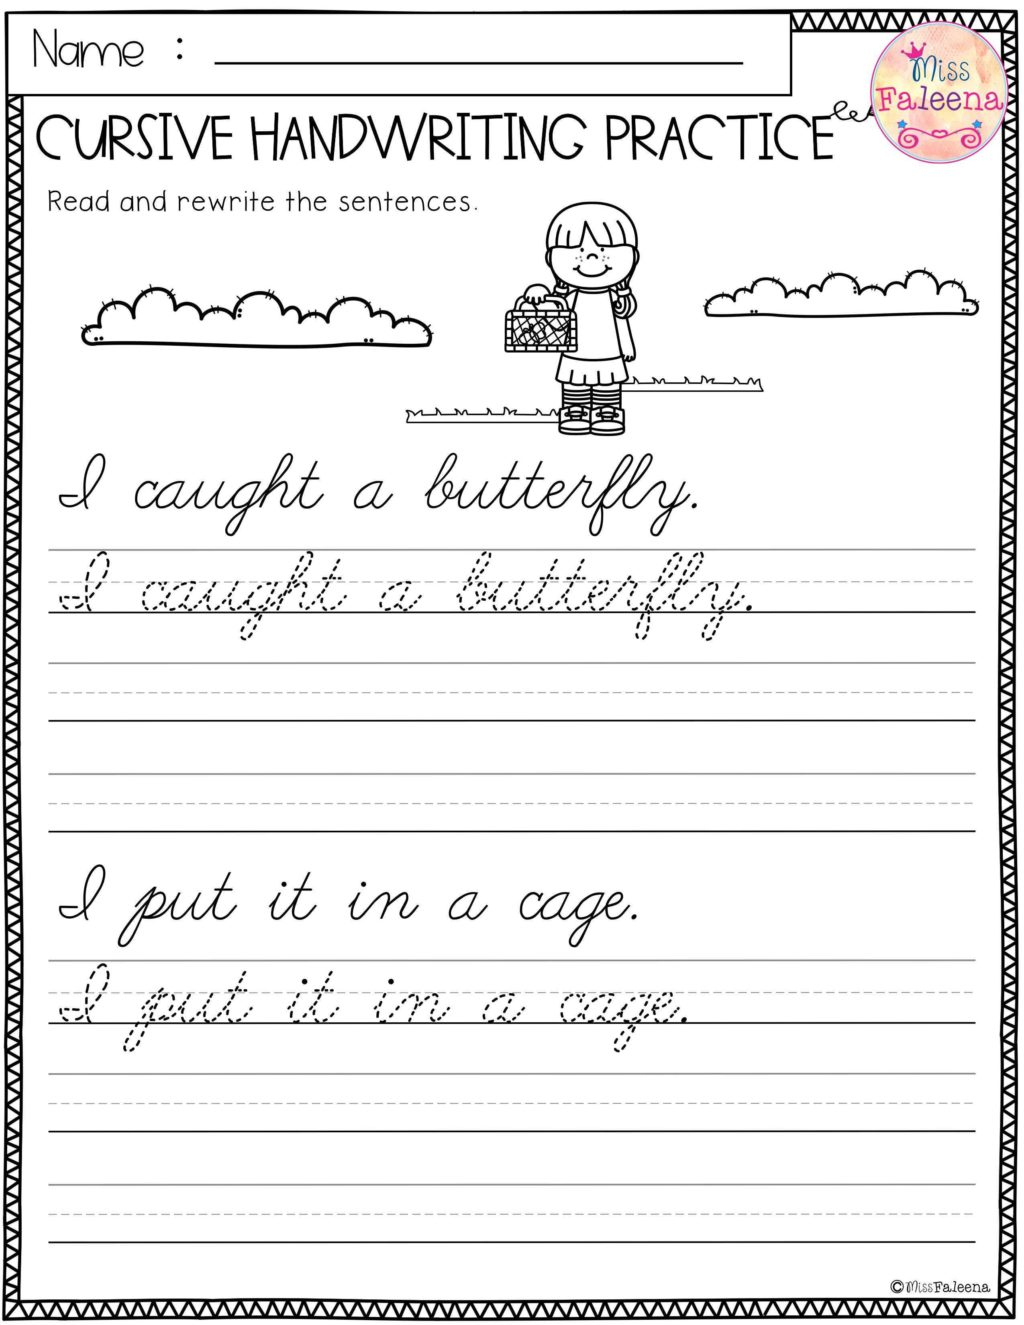 hight resolution of 5th Grade Cursive Writing Worksheets   Printable Worksheets and Activities  for Teachers